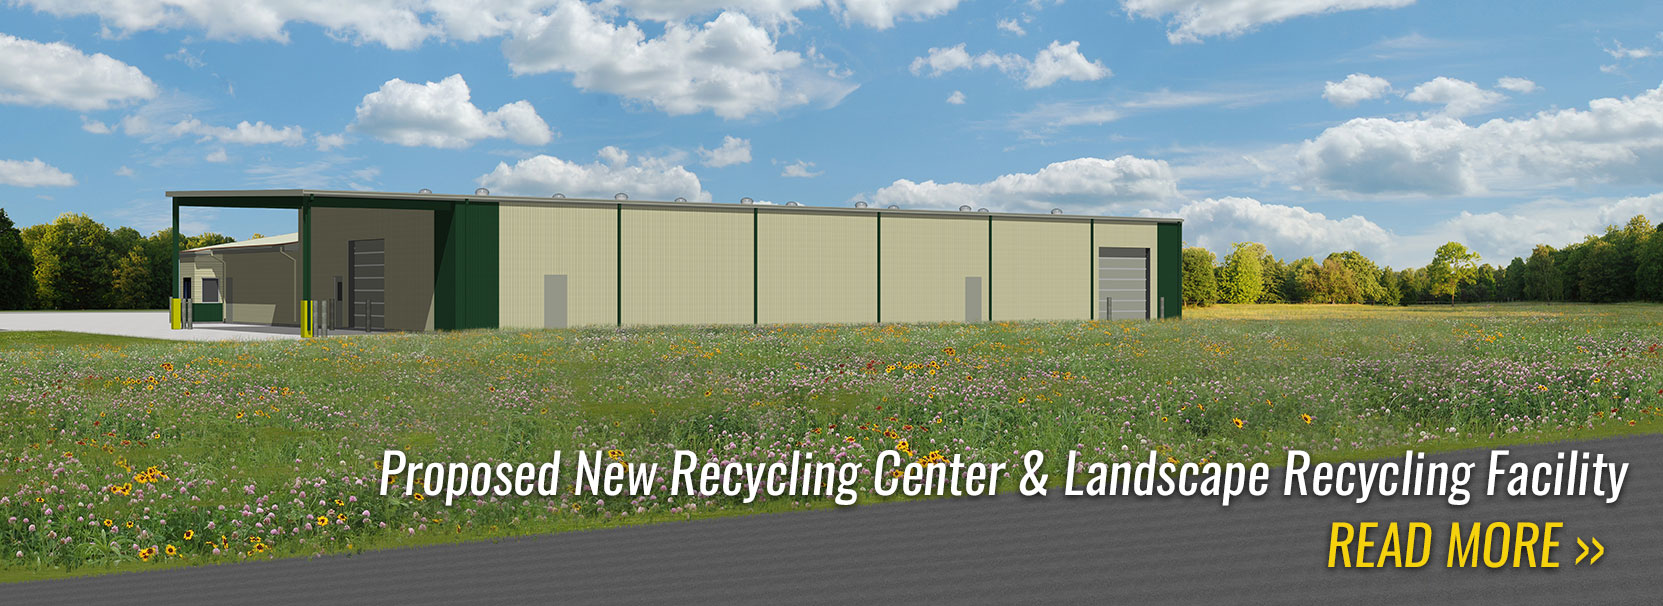 Proposed New Recyling Center & Landscape Recycling Facility